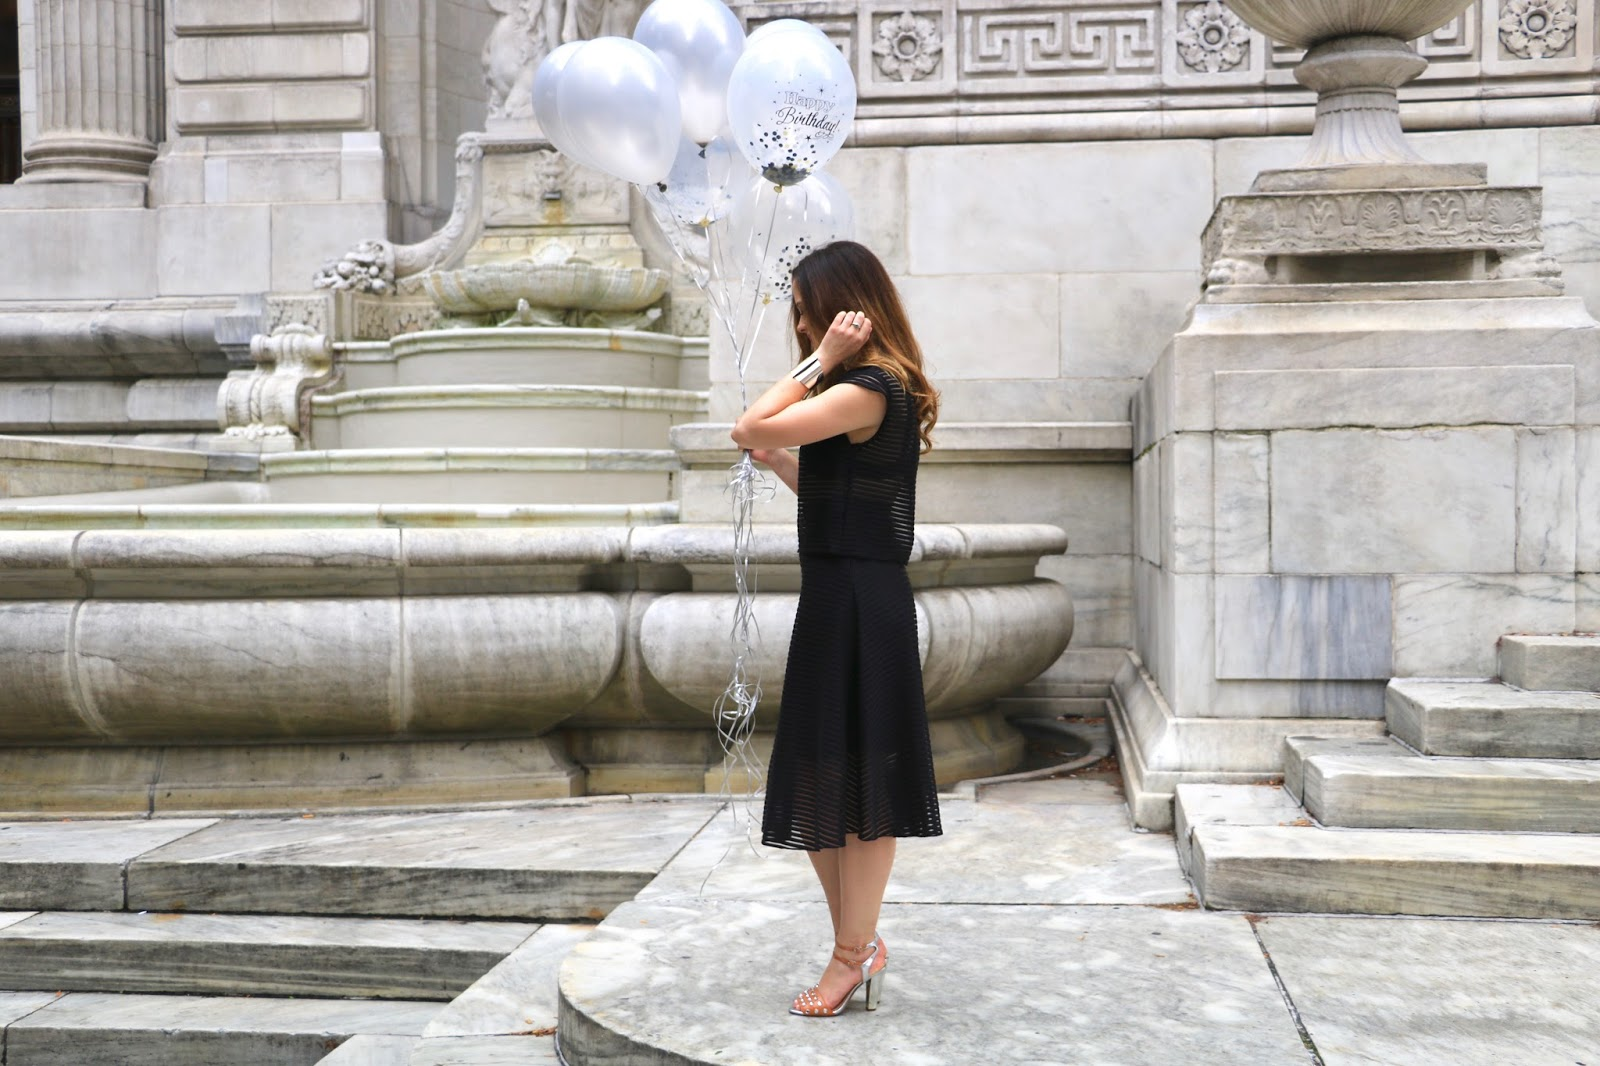 NYC fashion blogger Kat's Fashion Fix wearing a black mesh outfit